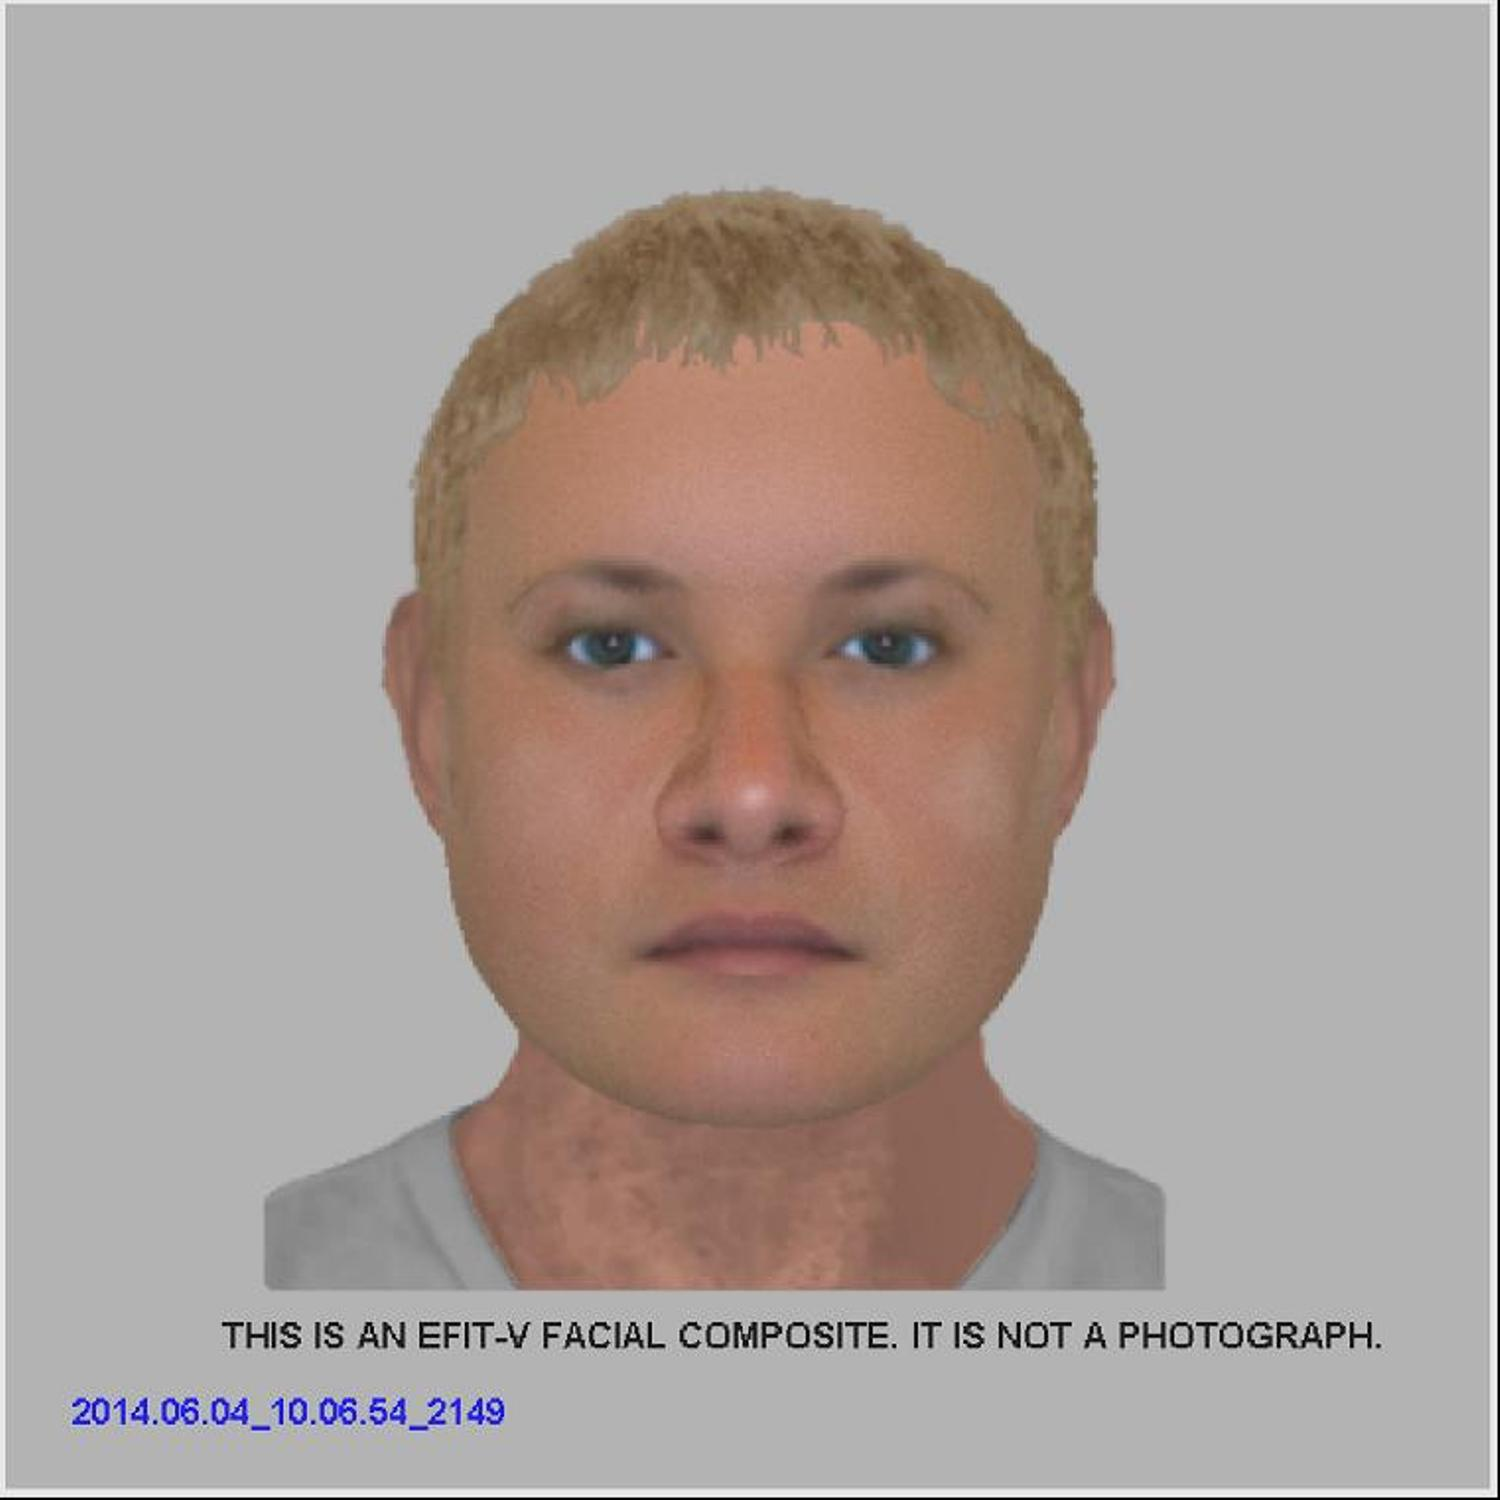 E-fit issued to find burglary suspec